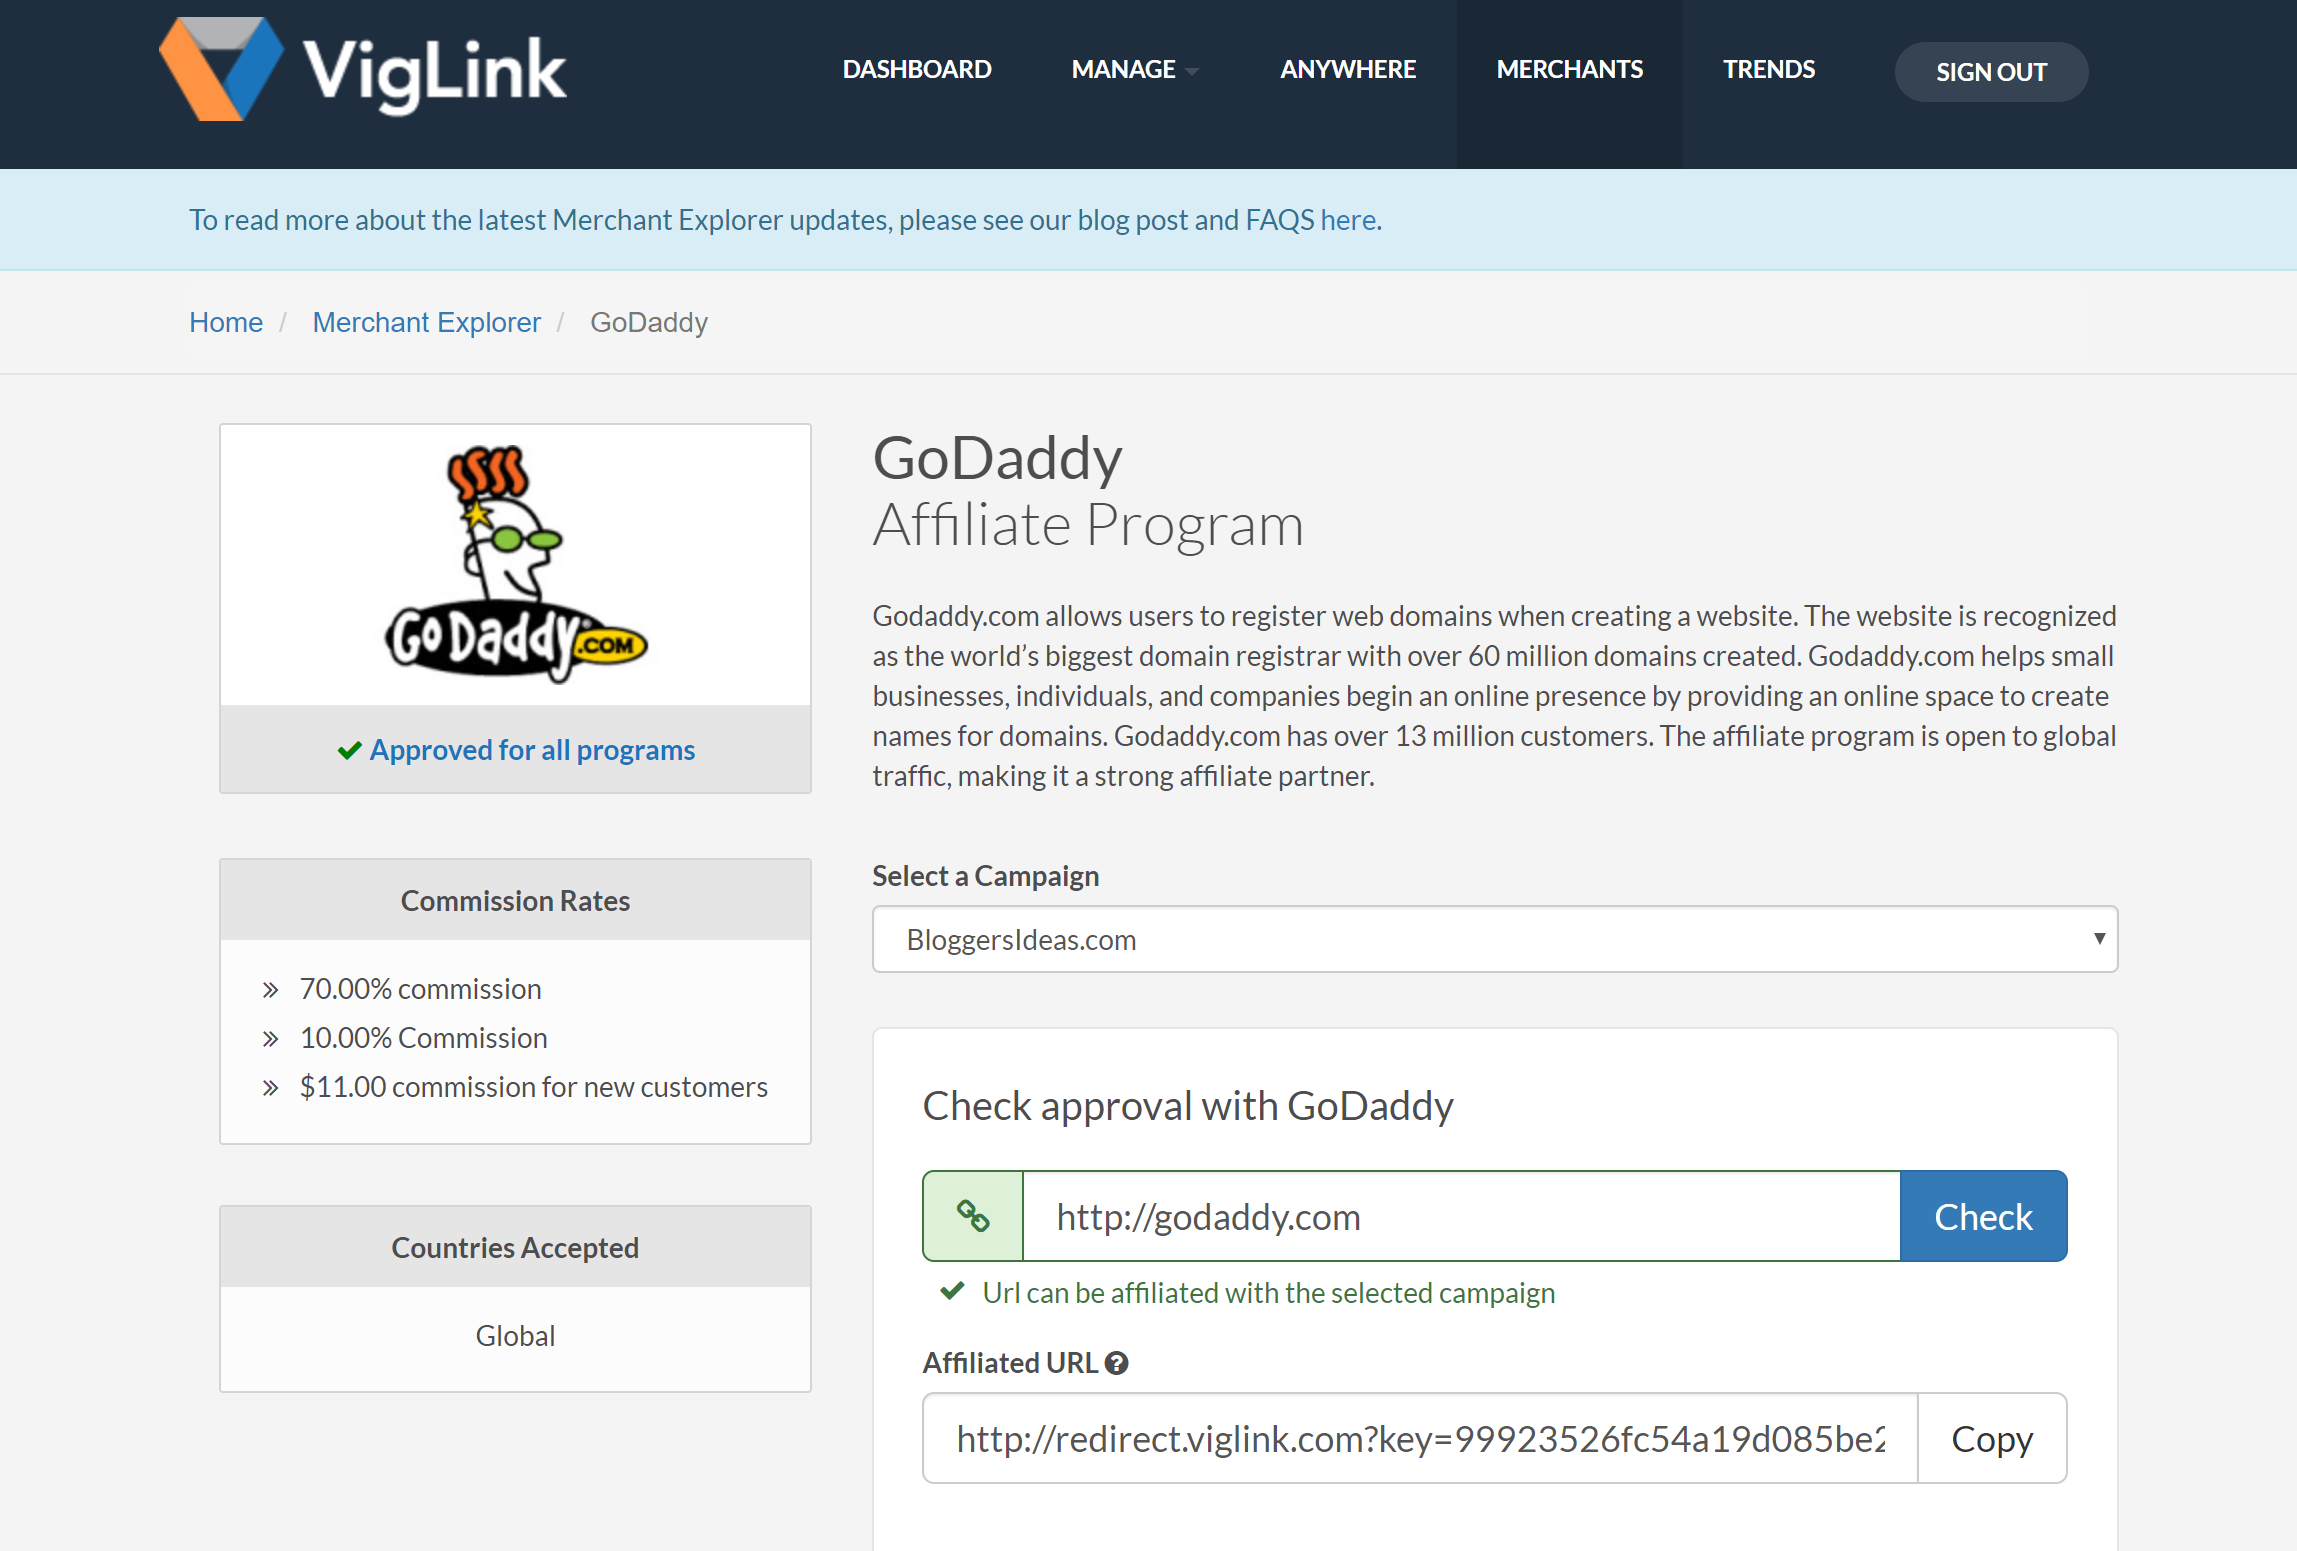 Viglink Dashboard Goddady Affiliate Program Link